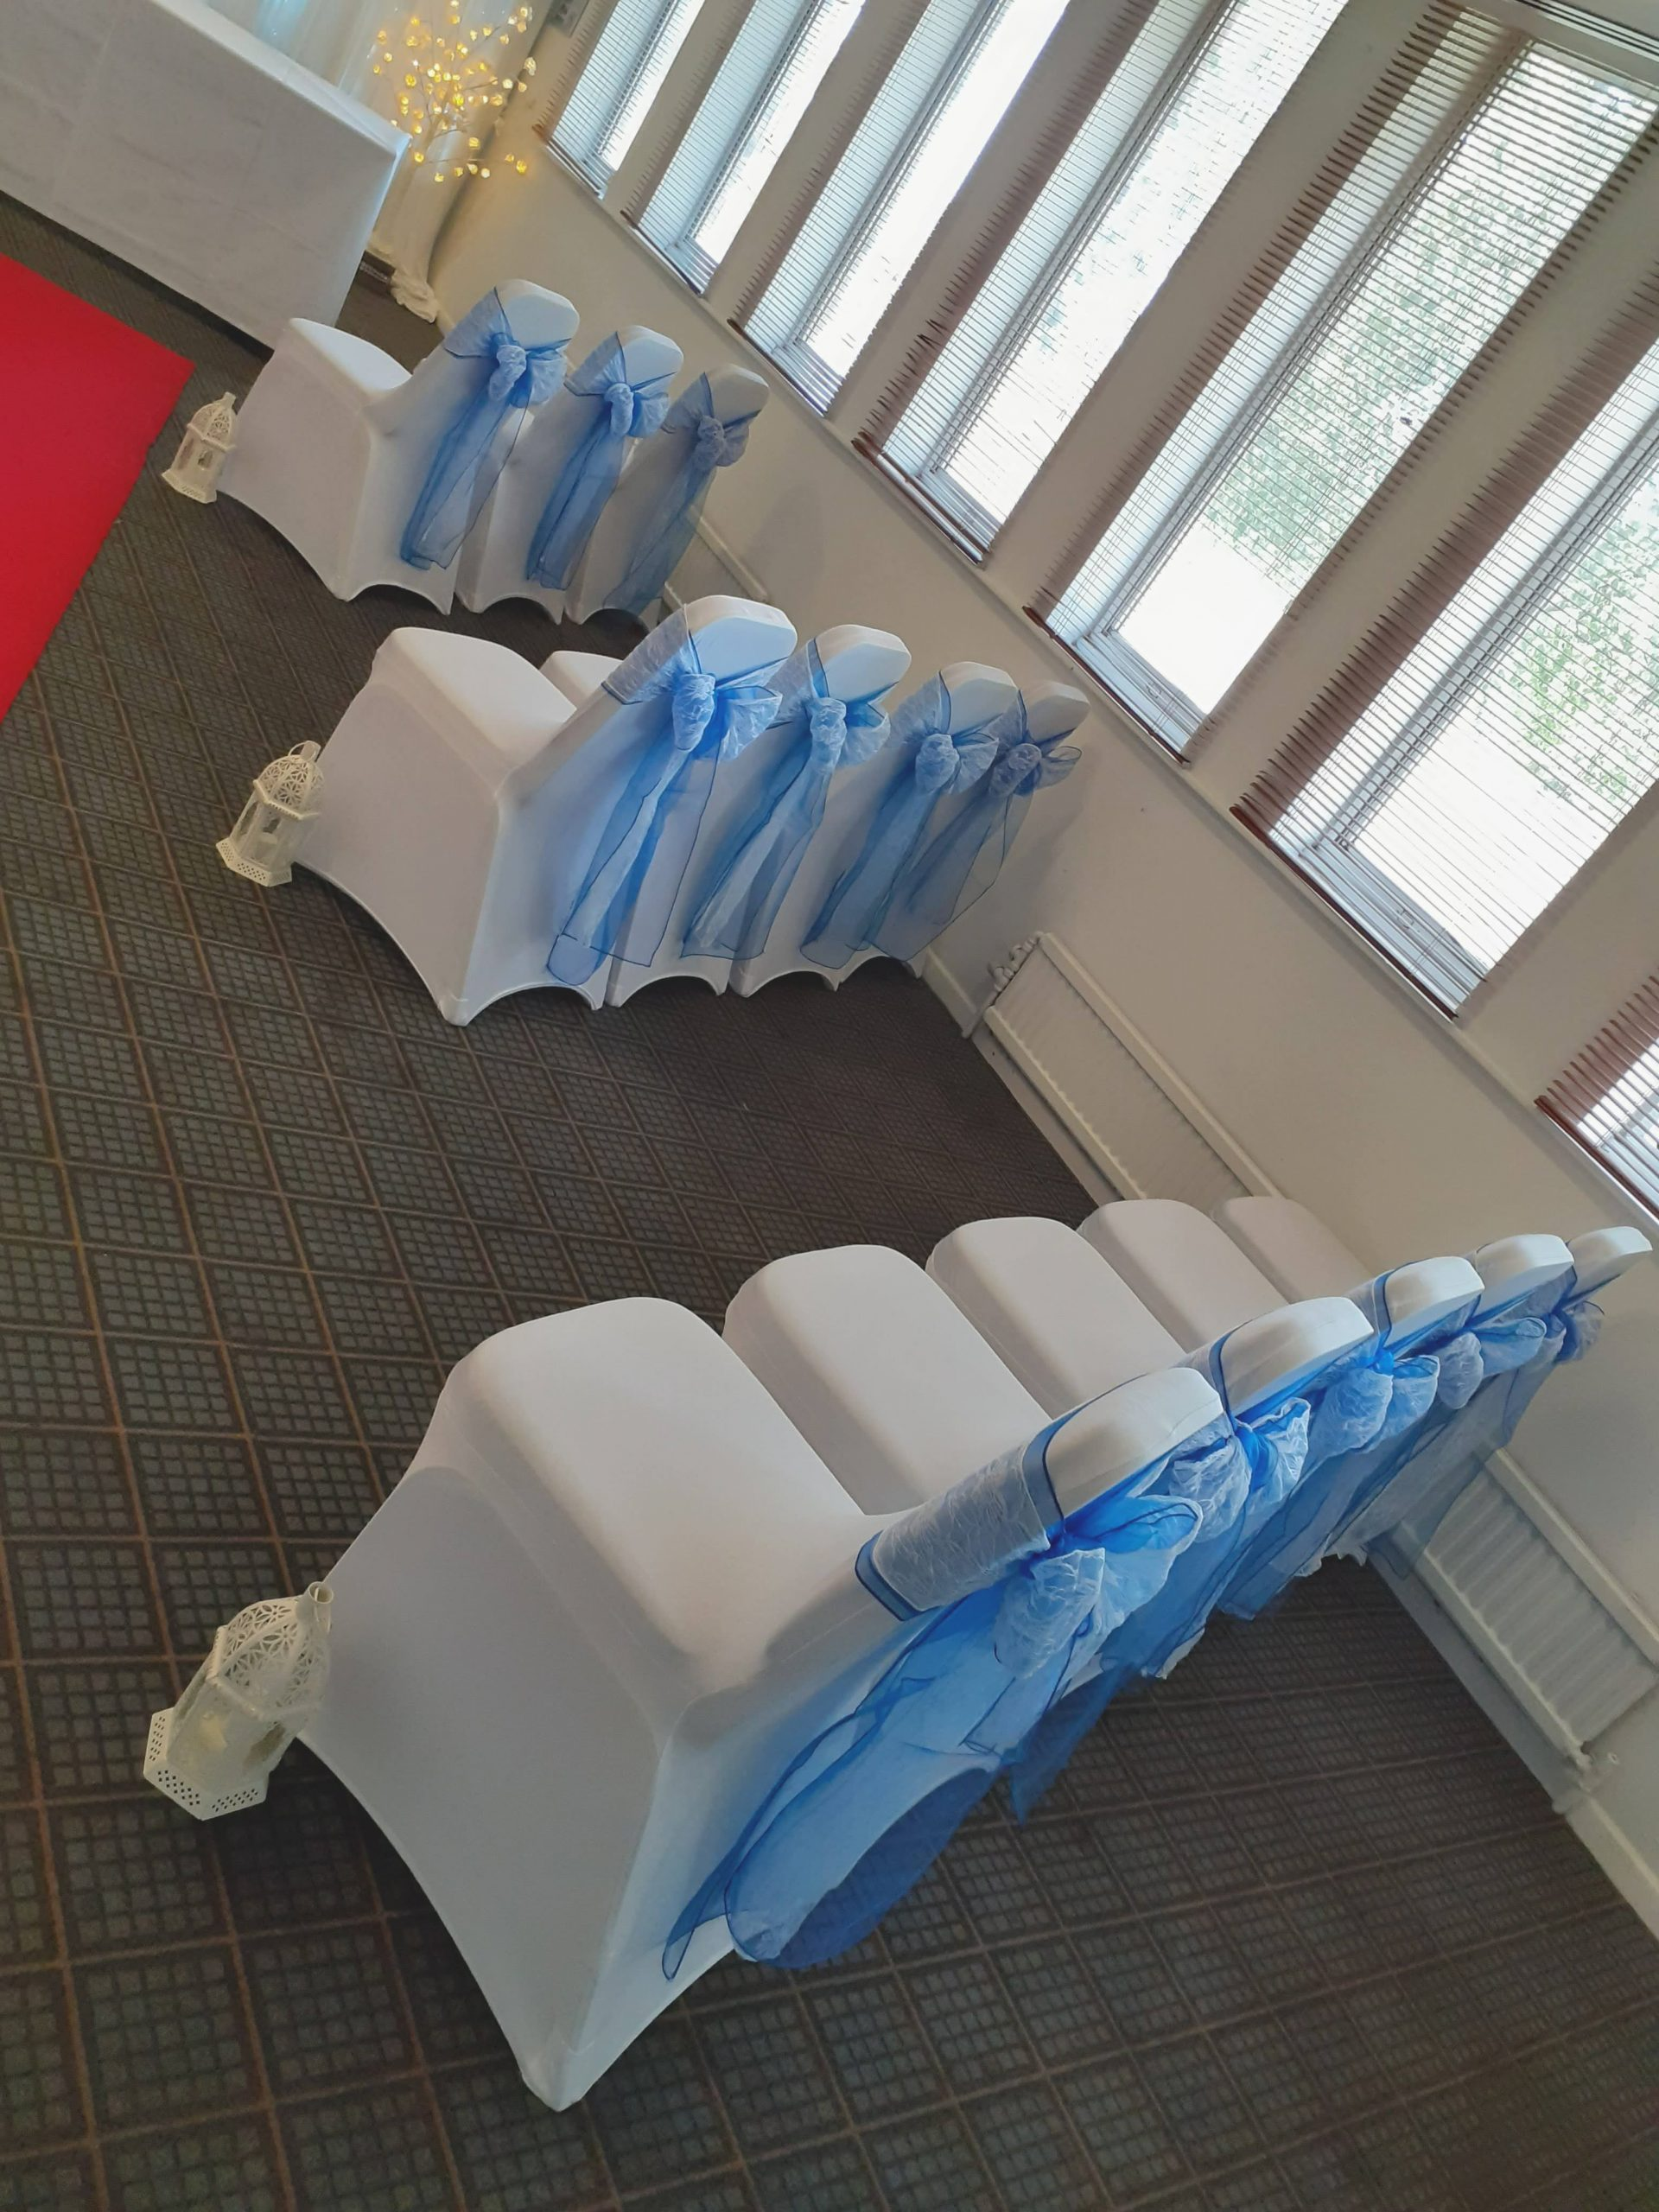 Chair Covers, Blue and white lace sash and Lanterns at Holiday Inn